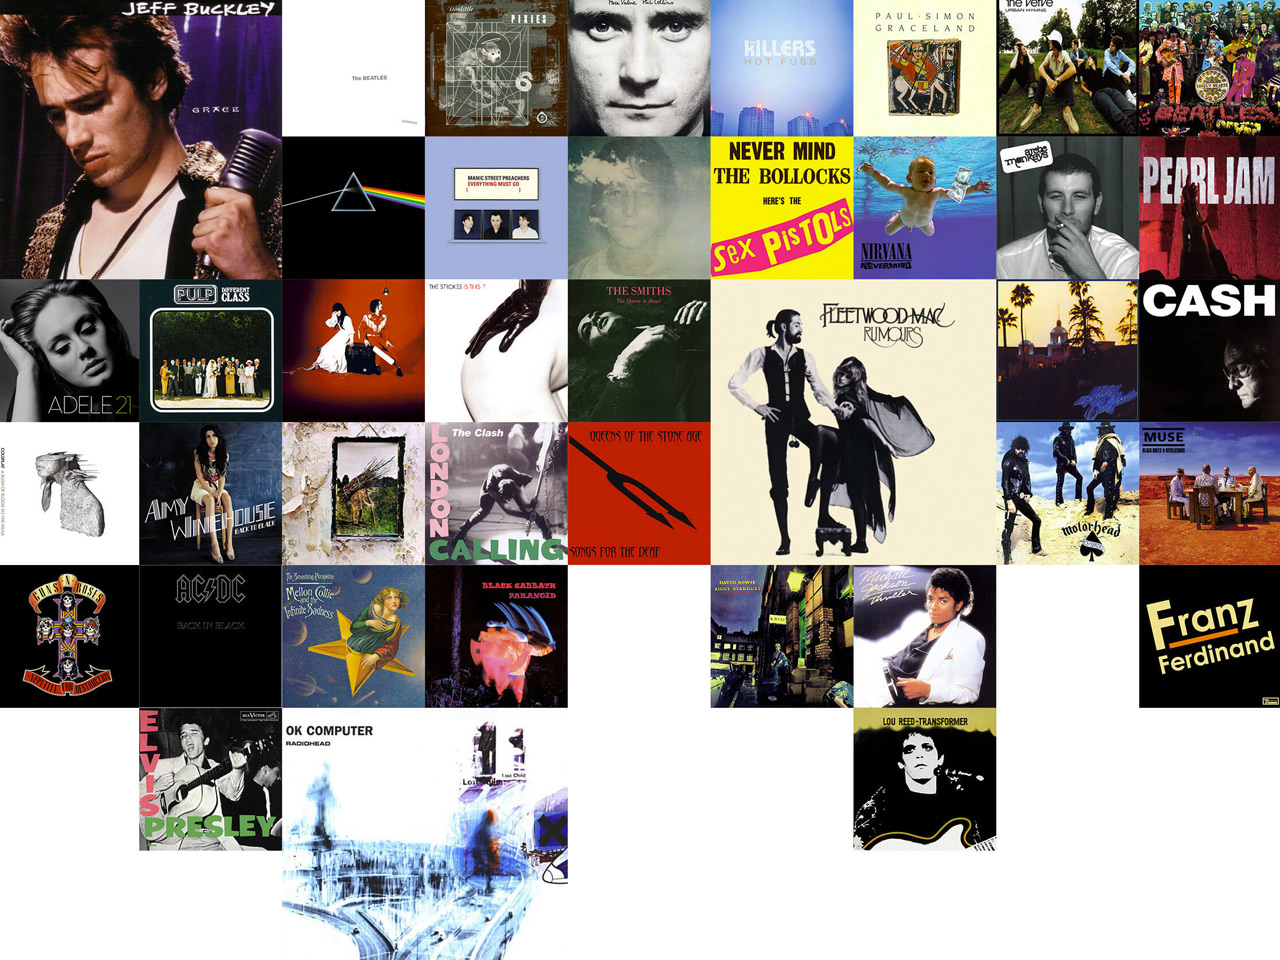 100 Best Hard Rock Songs Ever (According to VH1) - Stereogum